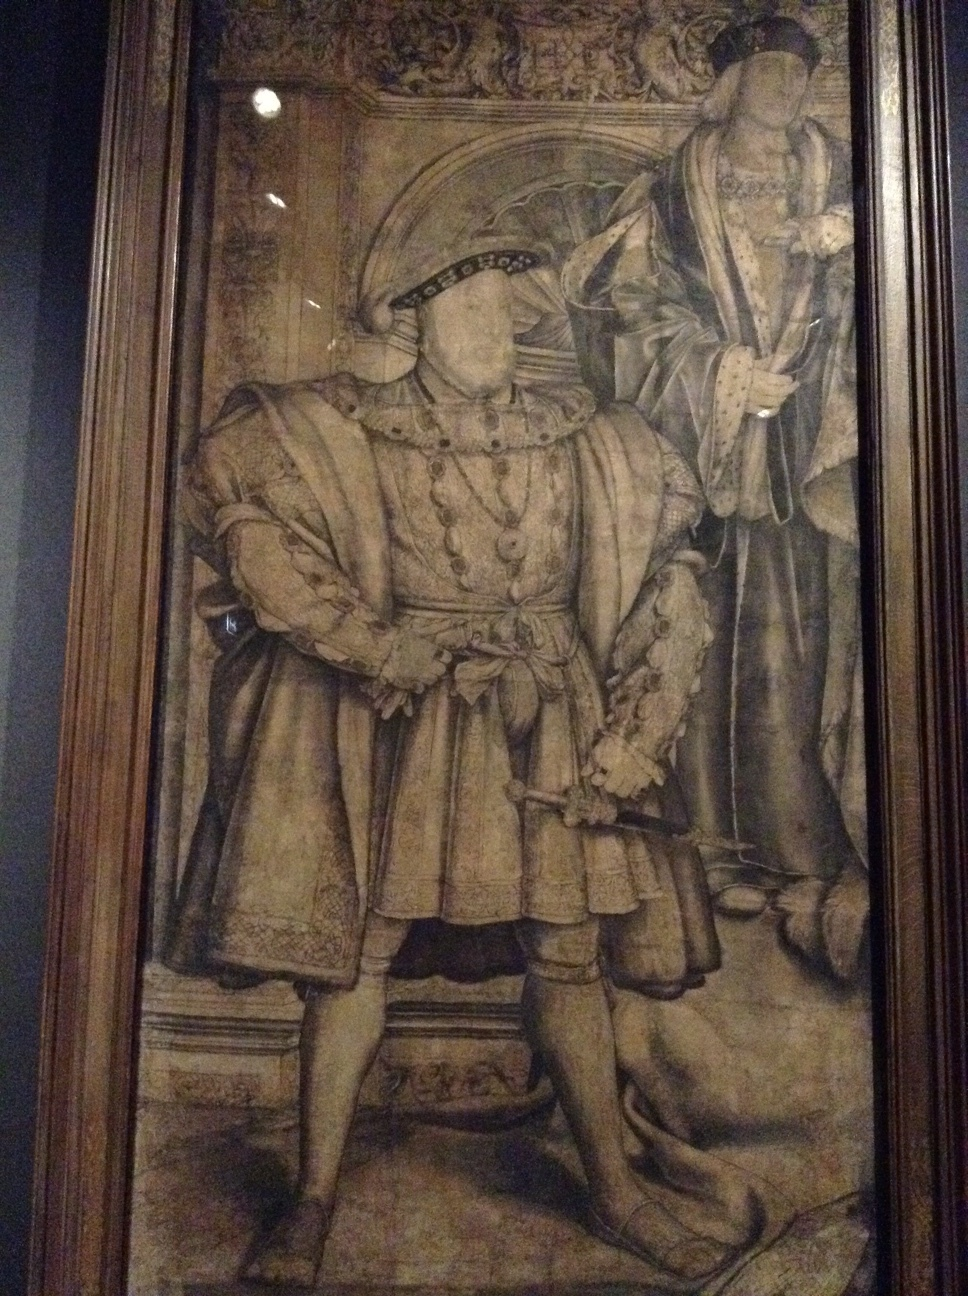 Henry VIII - I kind of really like this guy, which is sick but true. He's my favorite wife killing, religion changing, red headed monarch.